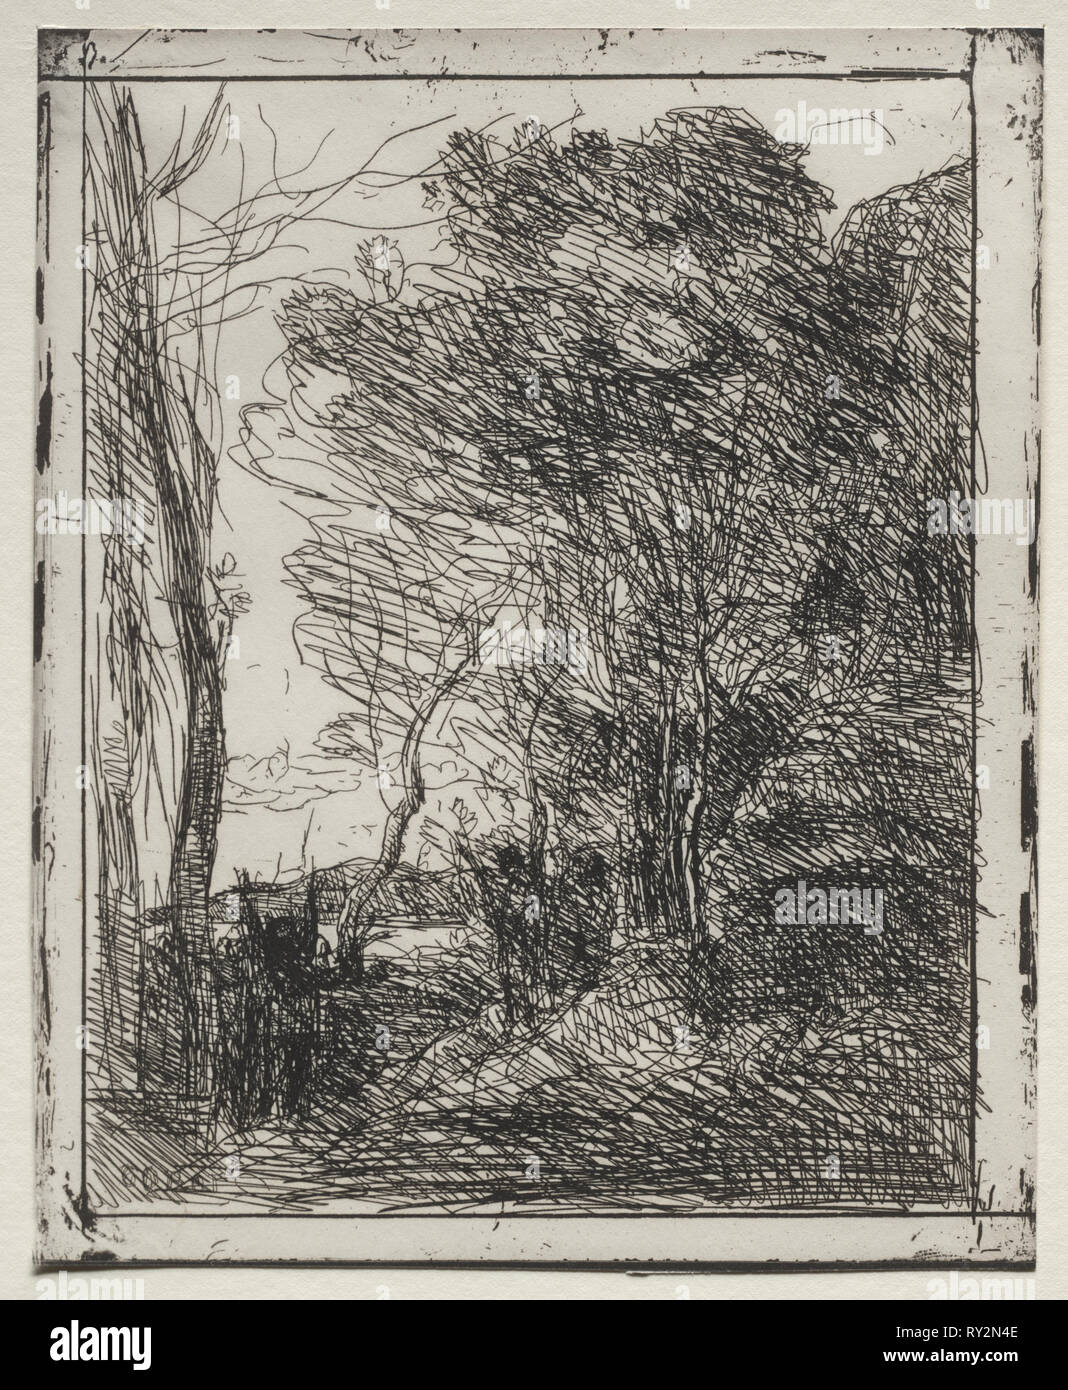 The Gallic Round, original impression 1857, printed in 1921. Jean Baptiste Camille Corot (French, 1796-1875). Cliché-verre; sheet: 20 x 16.3 cm (7 7/8 x 6 7/16 in.); image: 18.4 x 14.4 cm (7 1/4 x 5 11/16 in - Stock Image